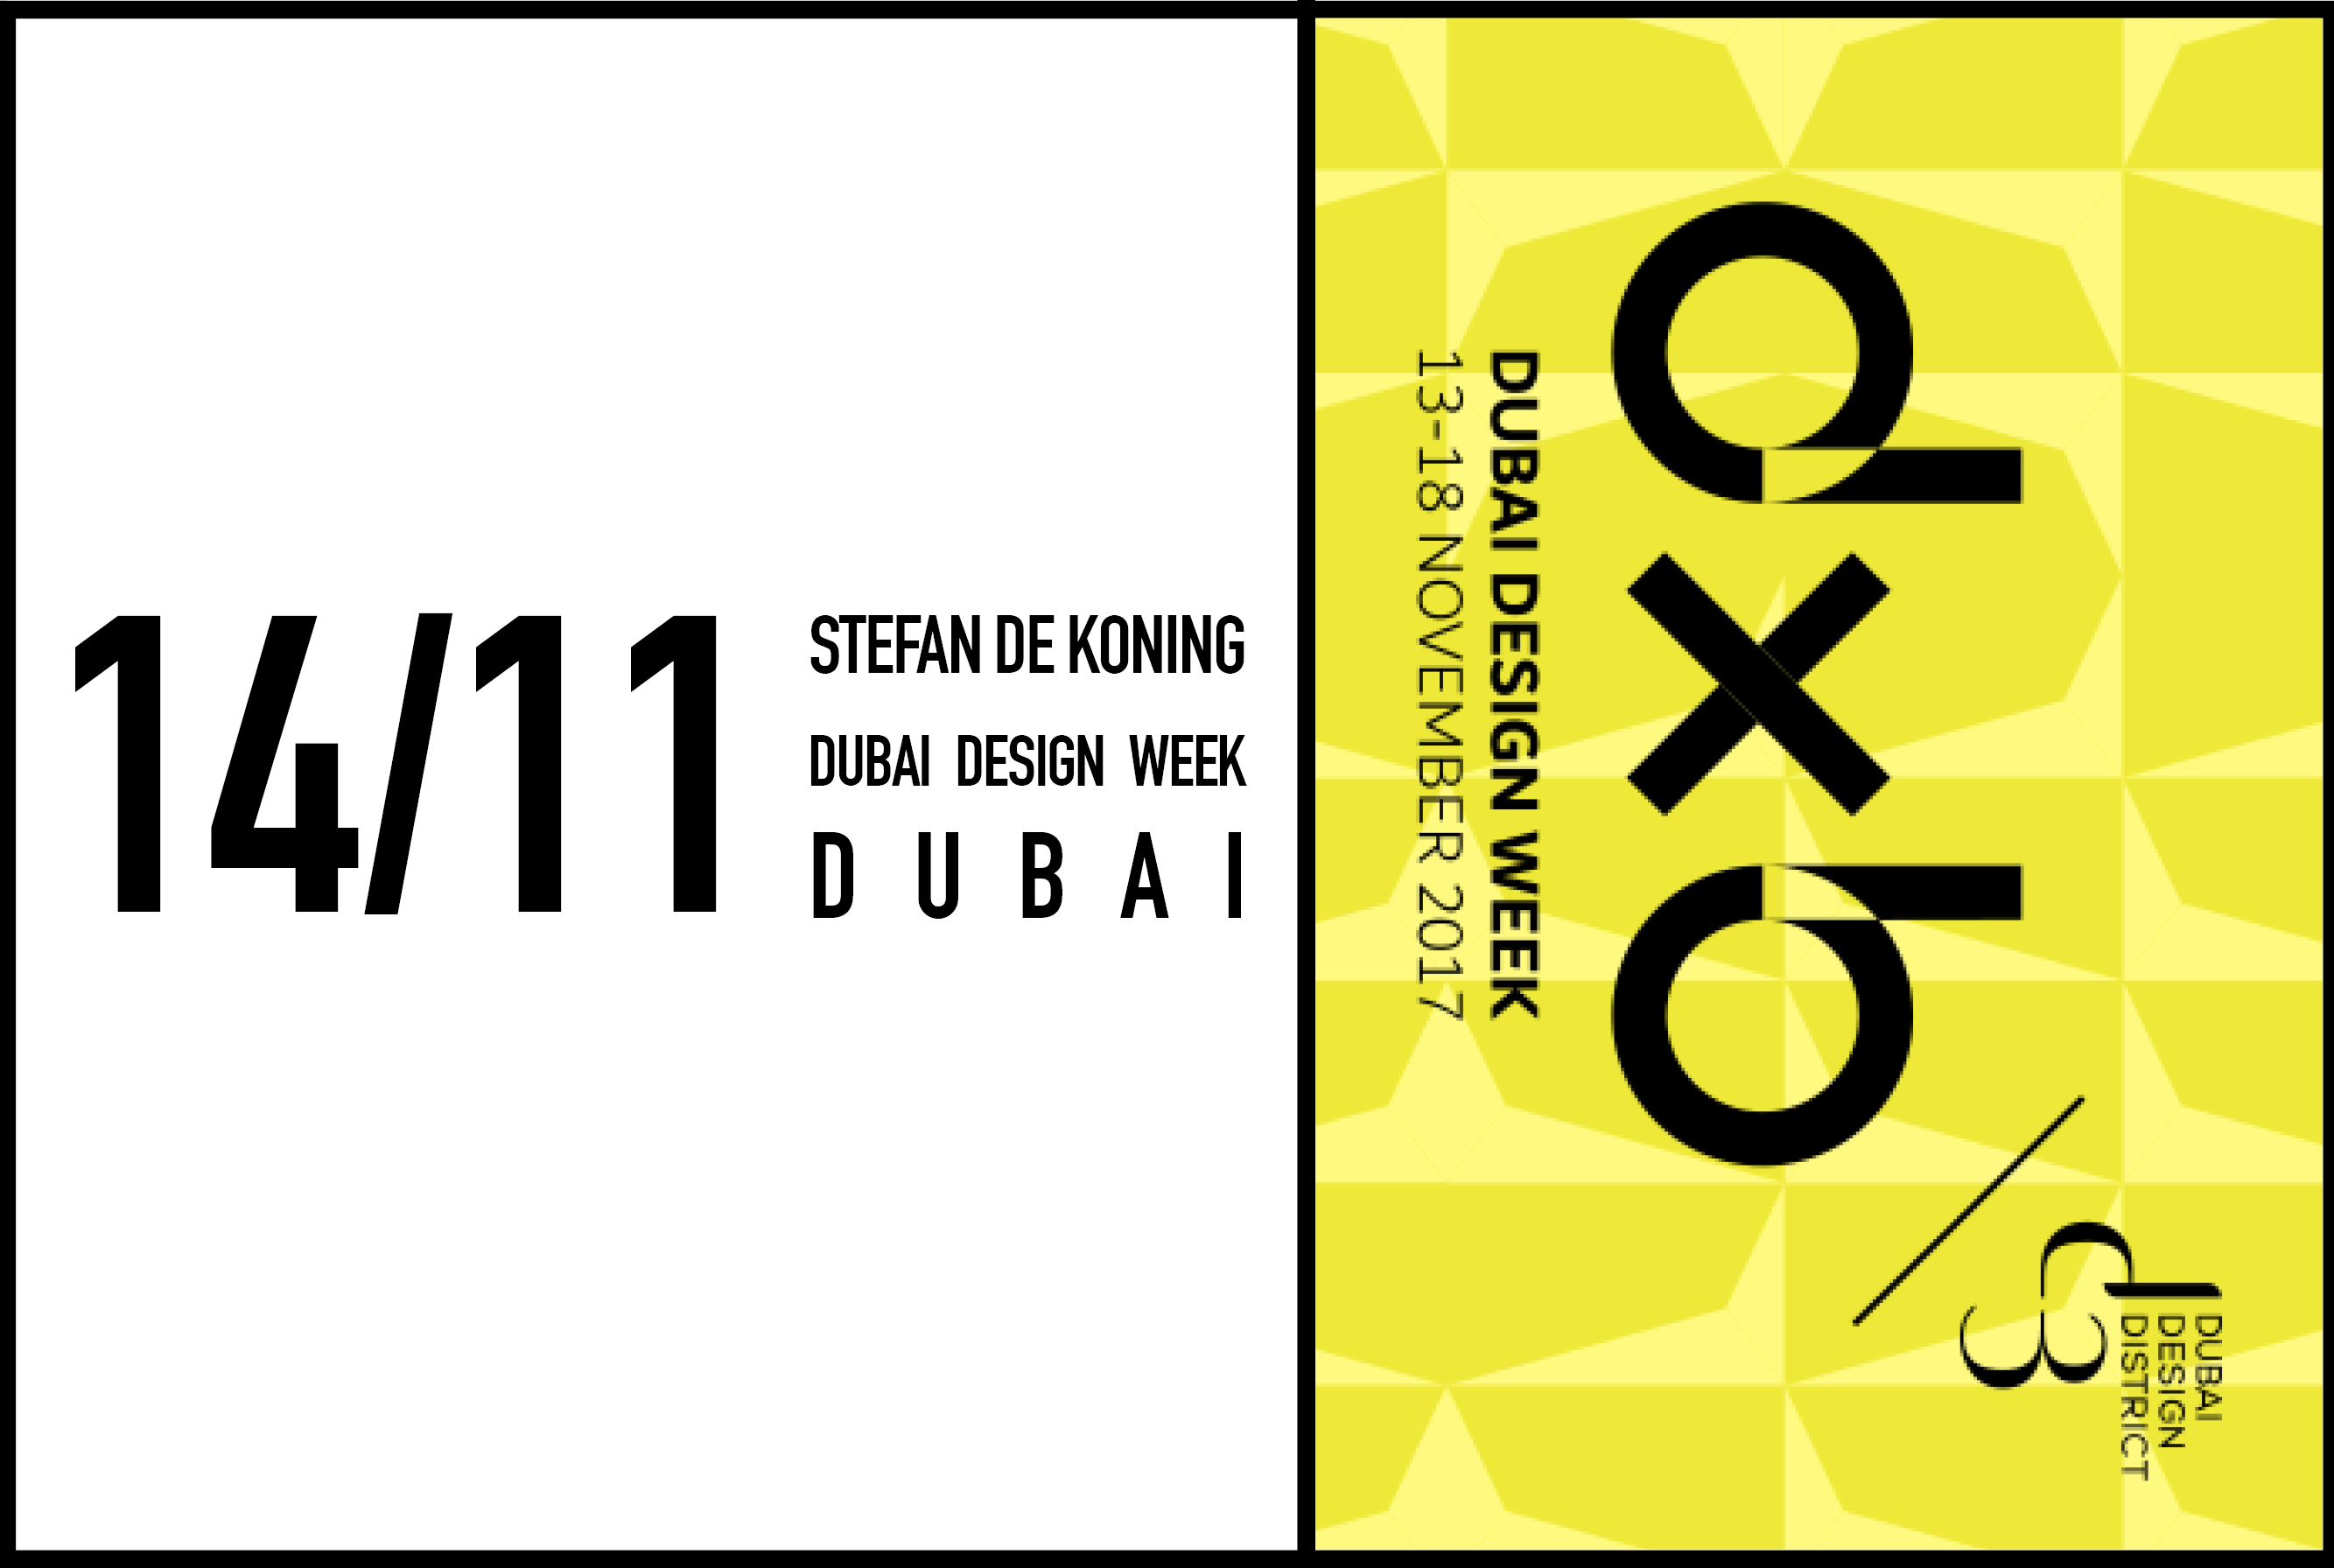 MVRDV's Stefan de Koning to give lecture at Dubai Design Week, 14 November 2017